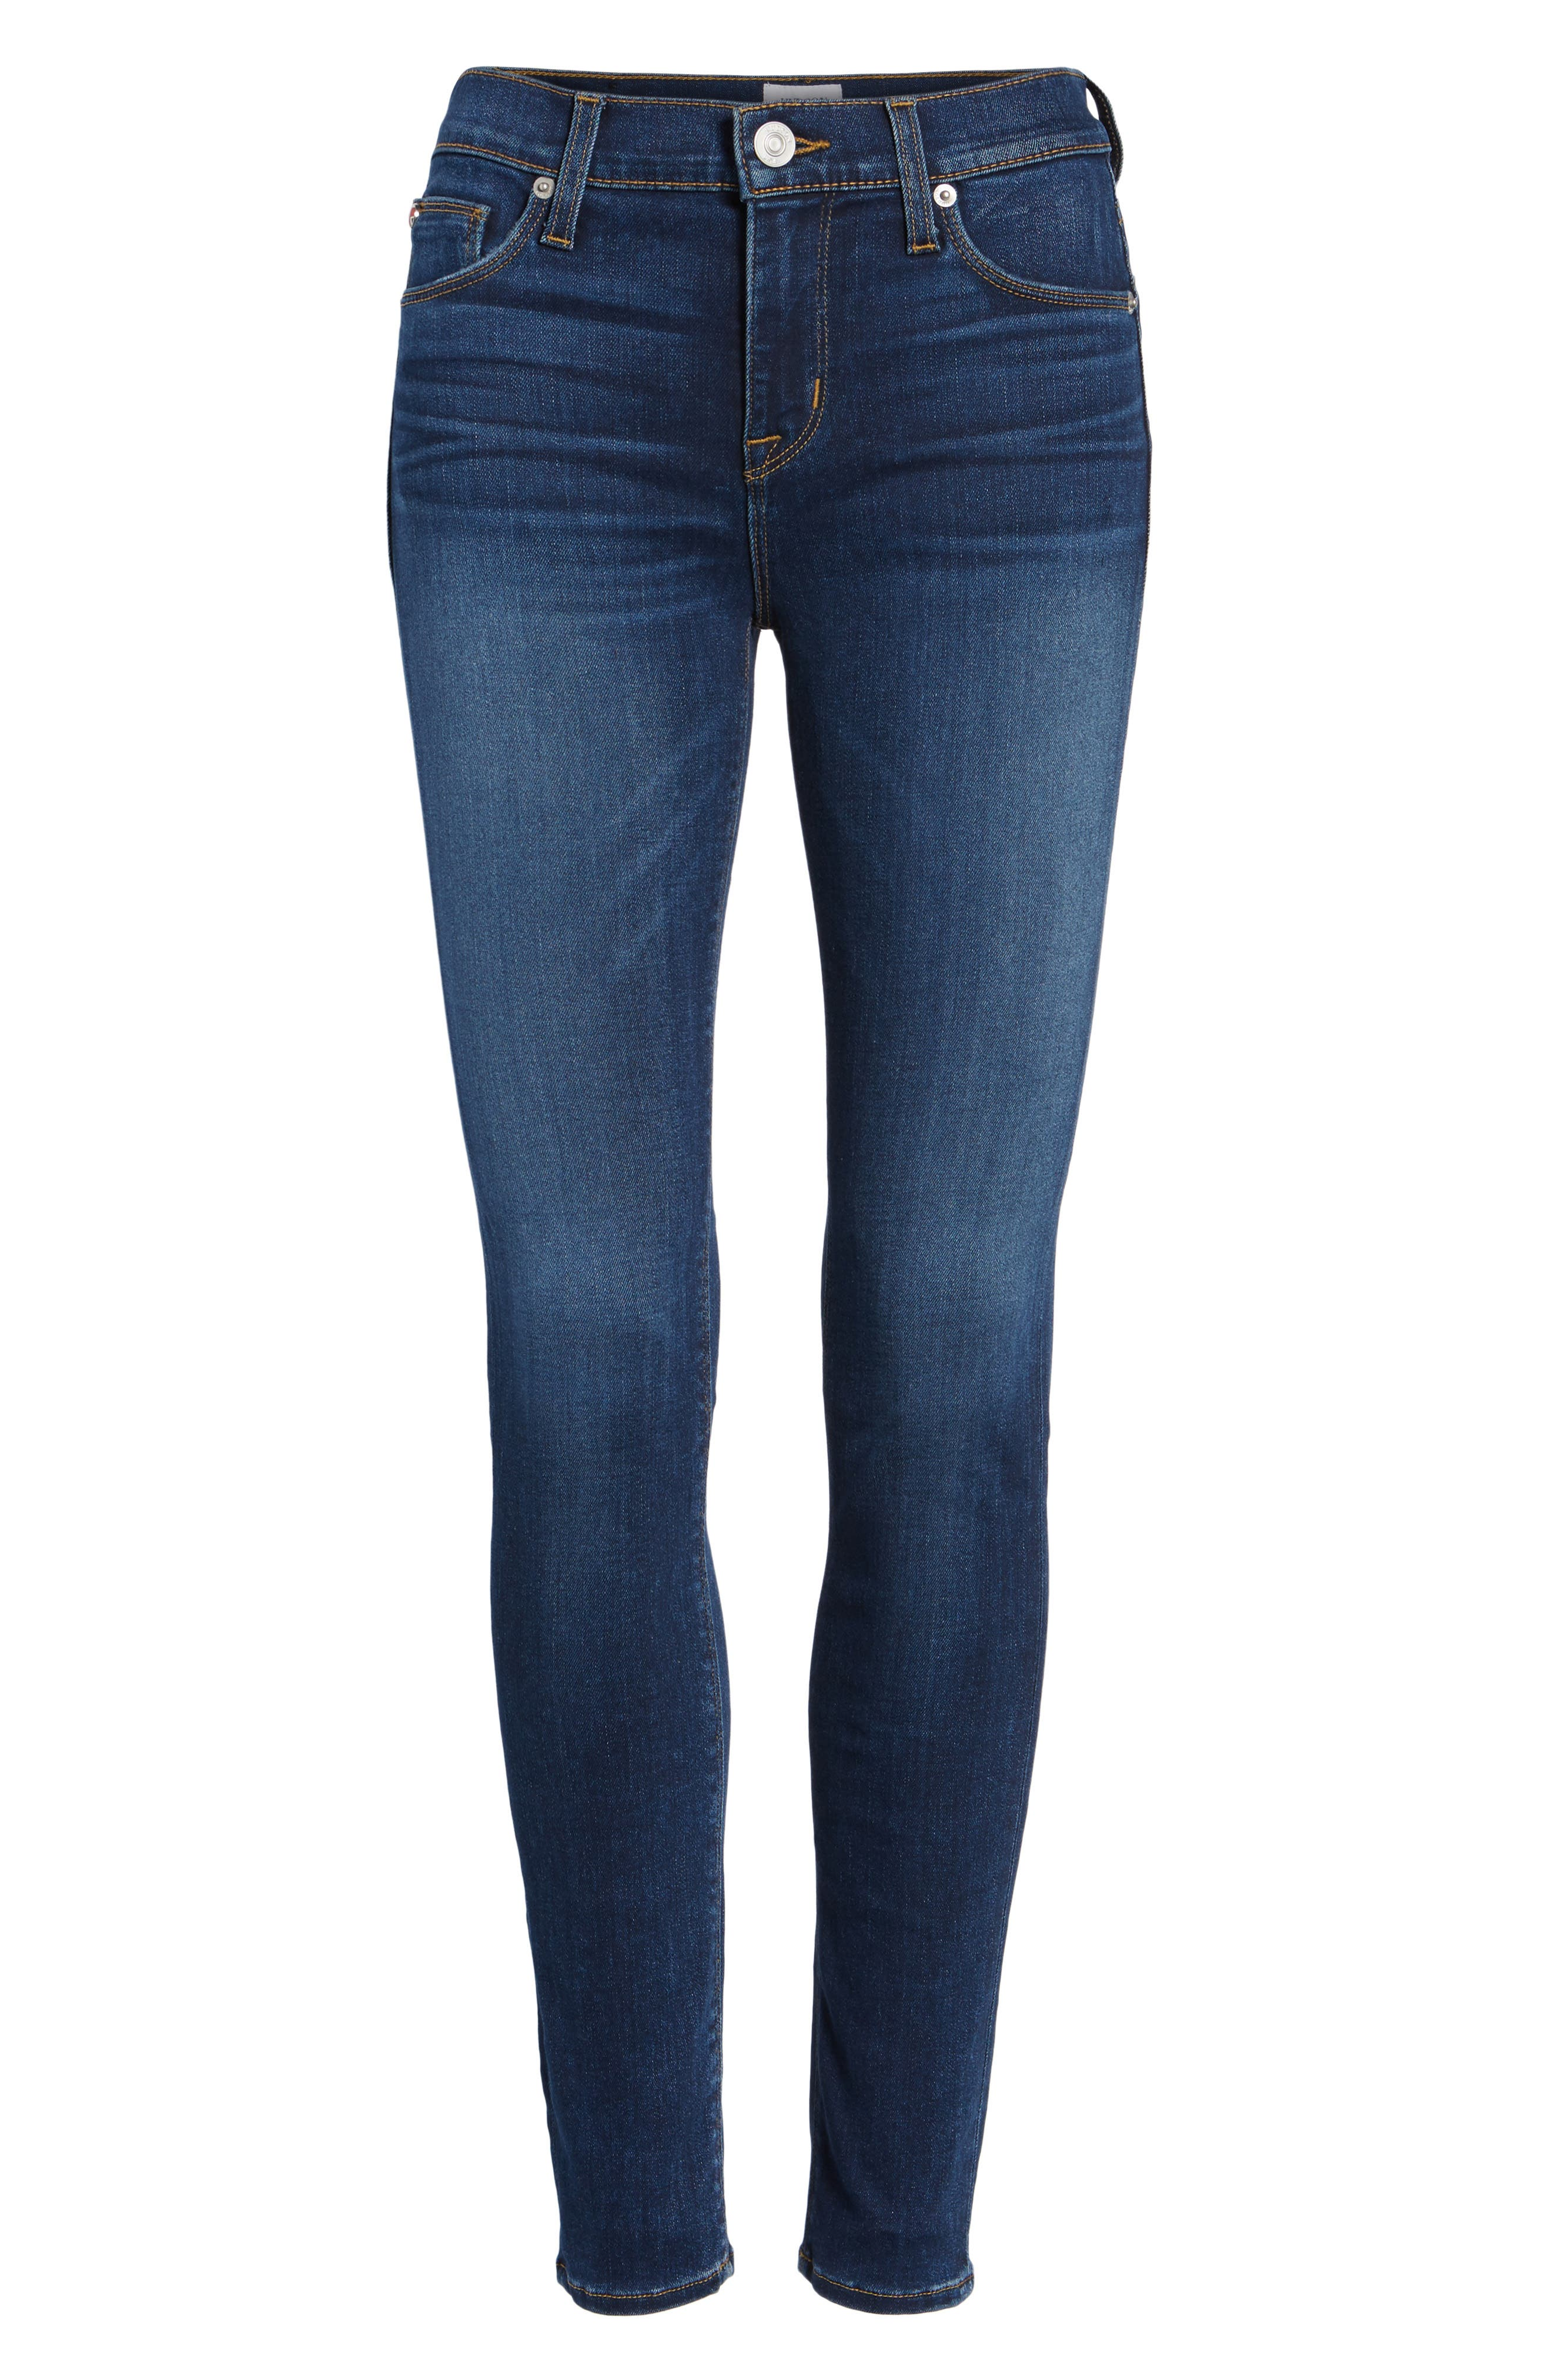 Nico Skinny Jeans,                             Alternate thumbnail 7, color,                             BLUE GOLD